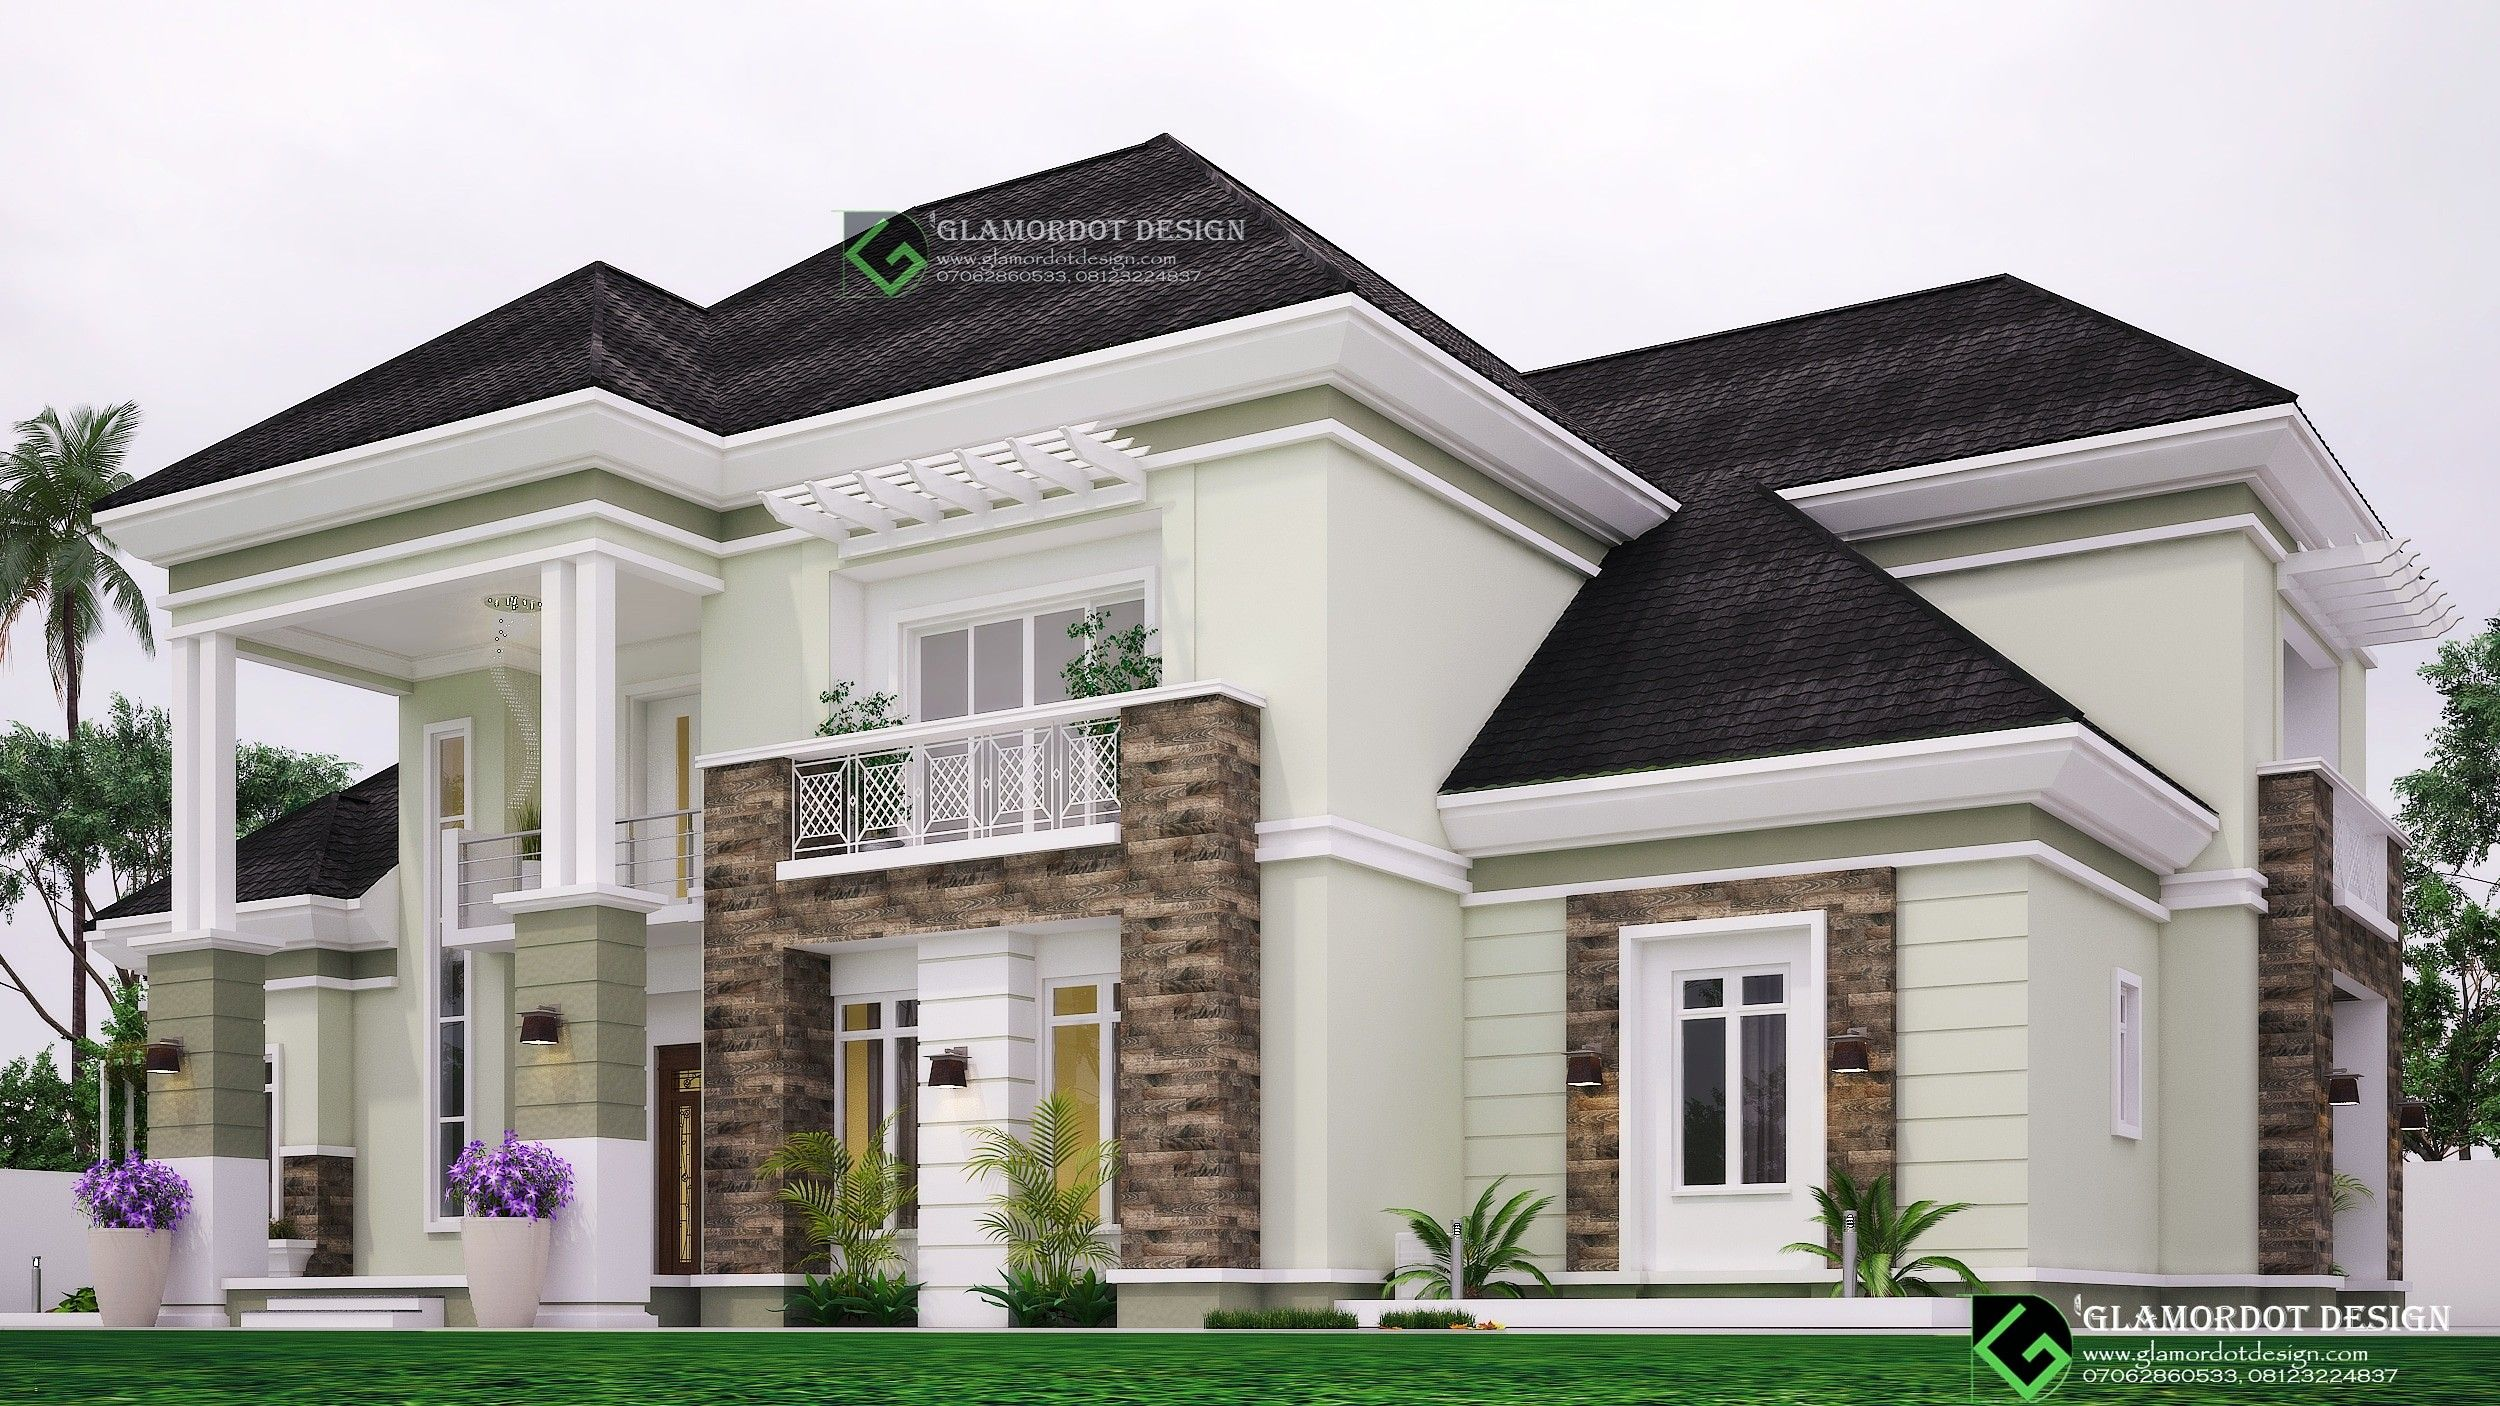 Architectural Design Of A Proposed 5 Bedroom Bungalow With Penthouse On A Plot Of 100ft By 100ft Hamptons House Exterior Facade House Beautiful House Plans